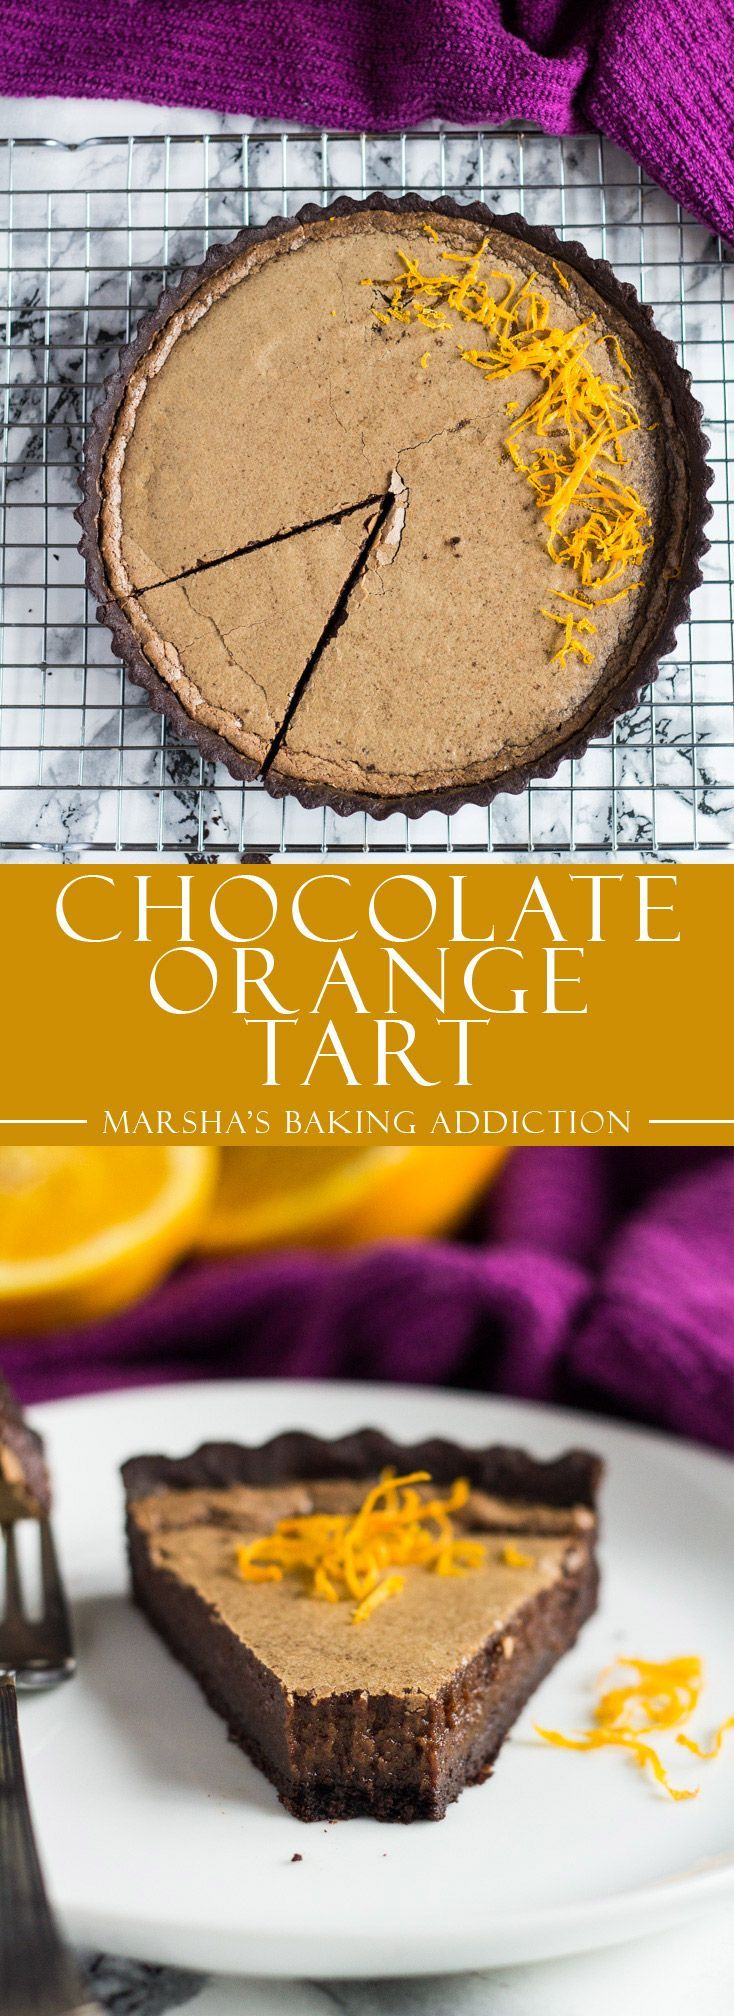 Dark Chocolate Orange Tart | http://marshasbakingaddiction.com /marshasbakeblog/